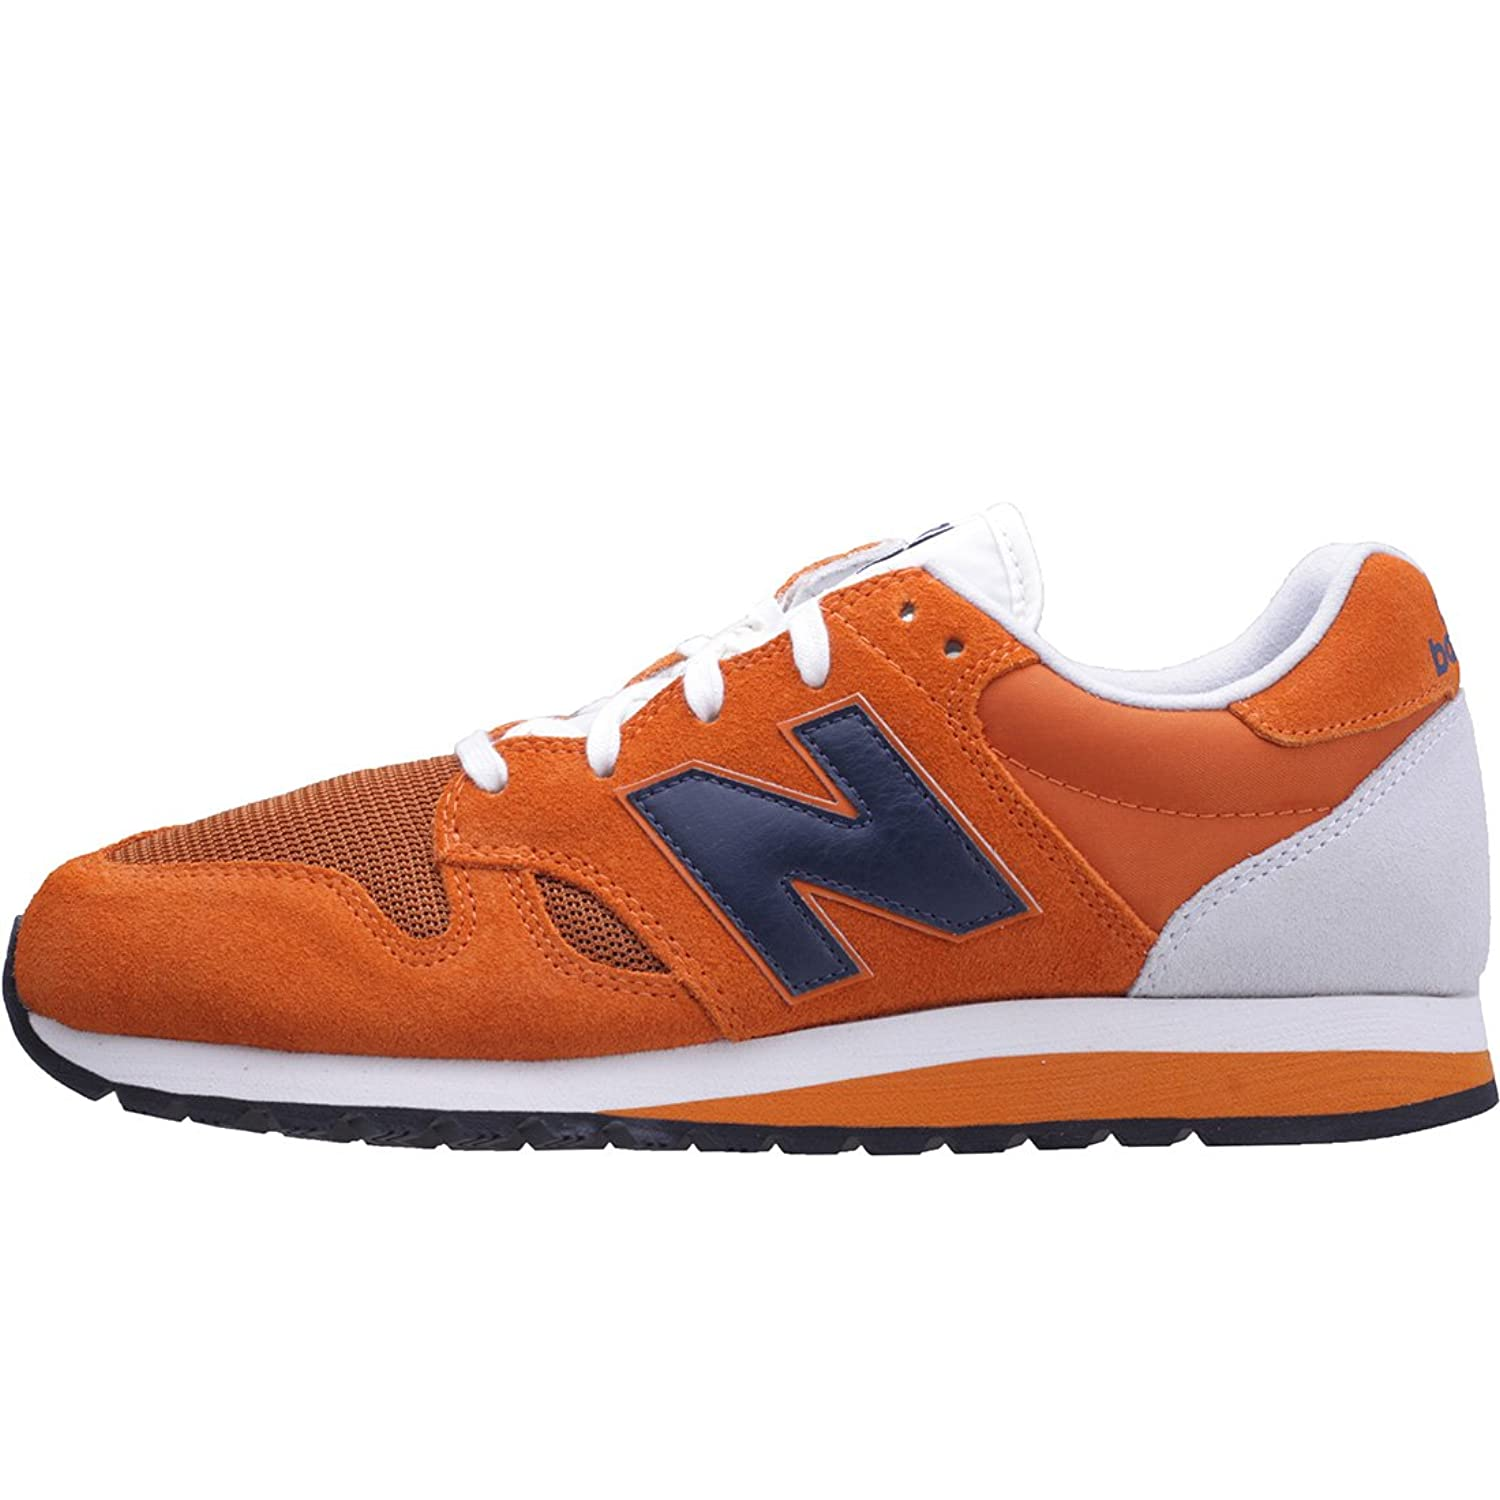 New Balance U 520 D CJ Vintage Orange 45 94LpIH